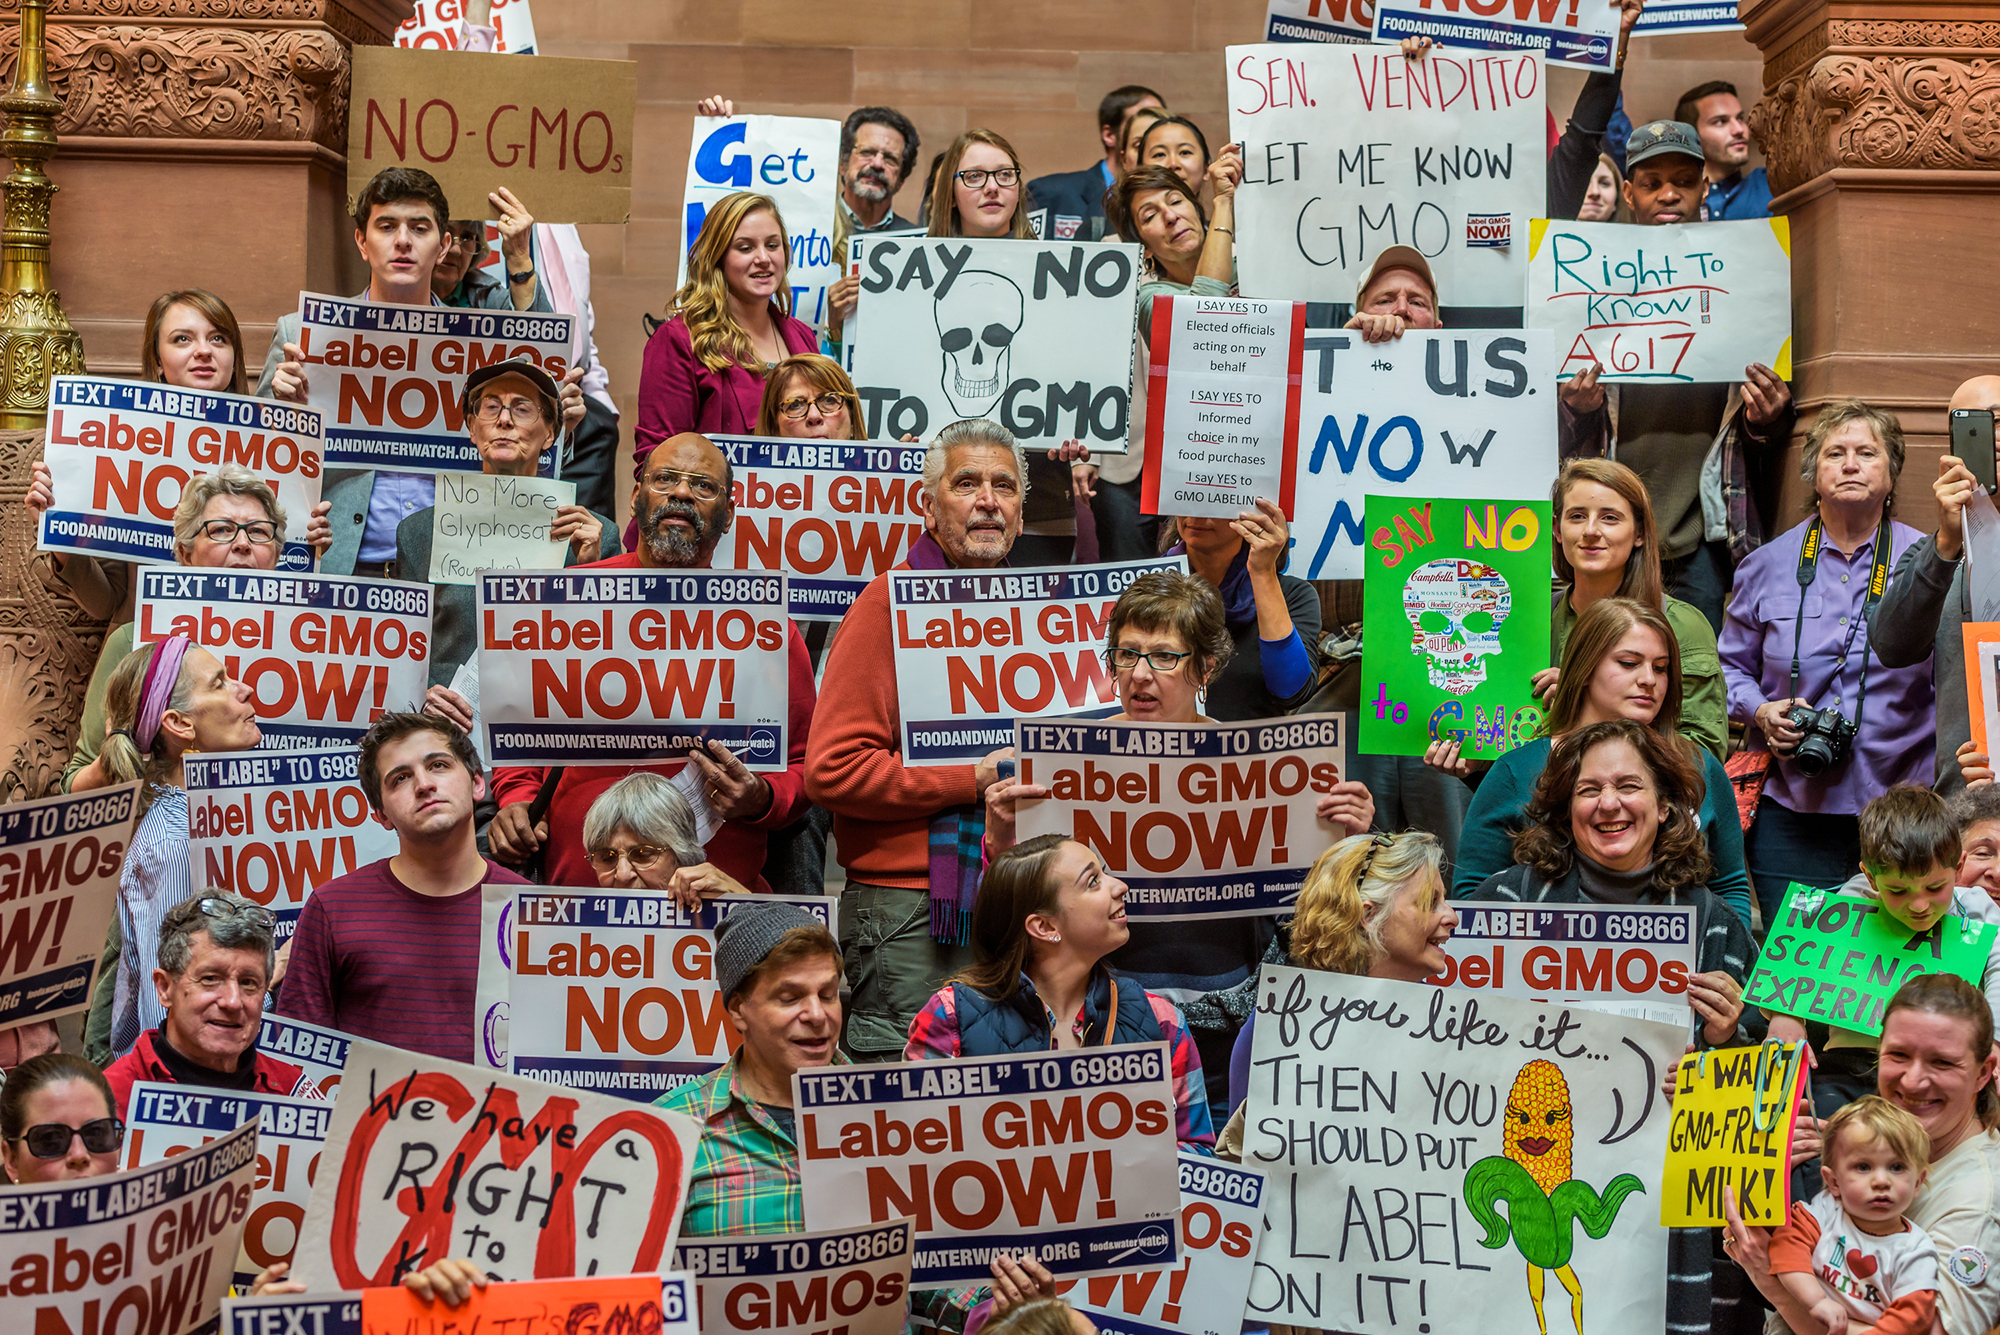 Protesters gathered at the New York state Capitol in Albany earlier this month to lobby their legislators to make GMO labels on foods mandatory in the state.